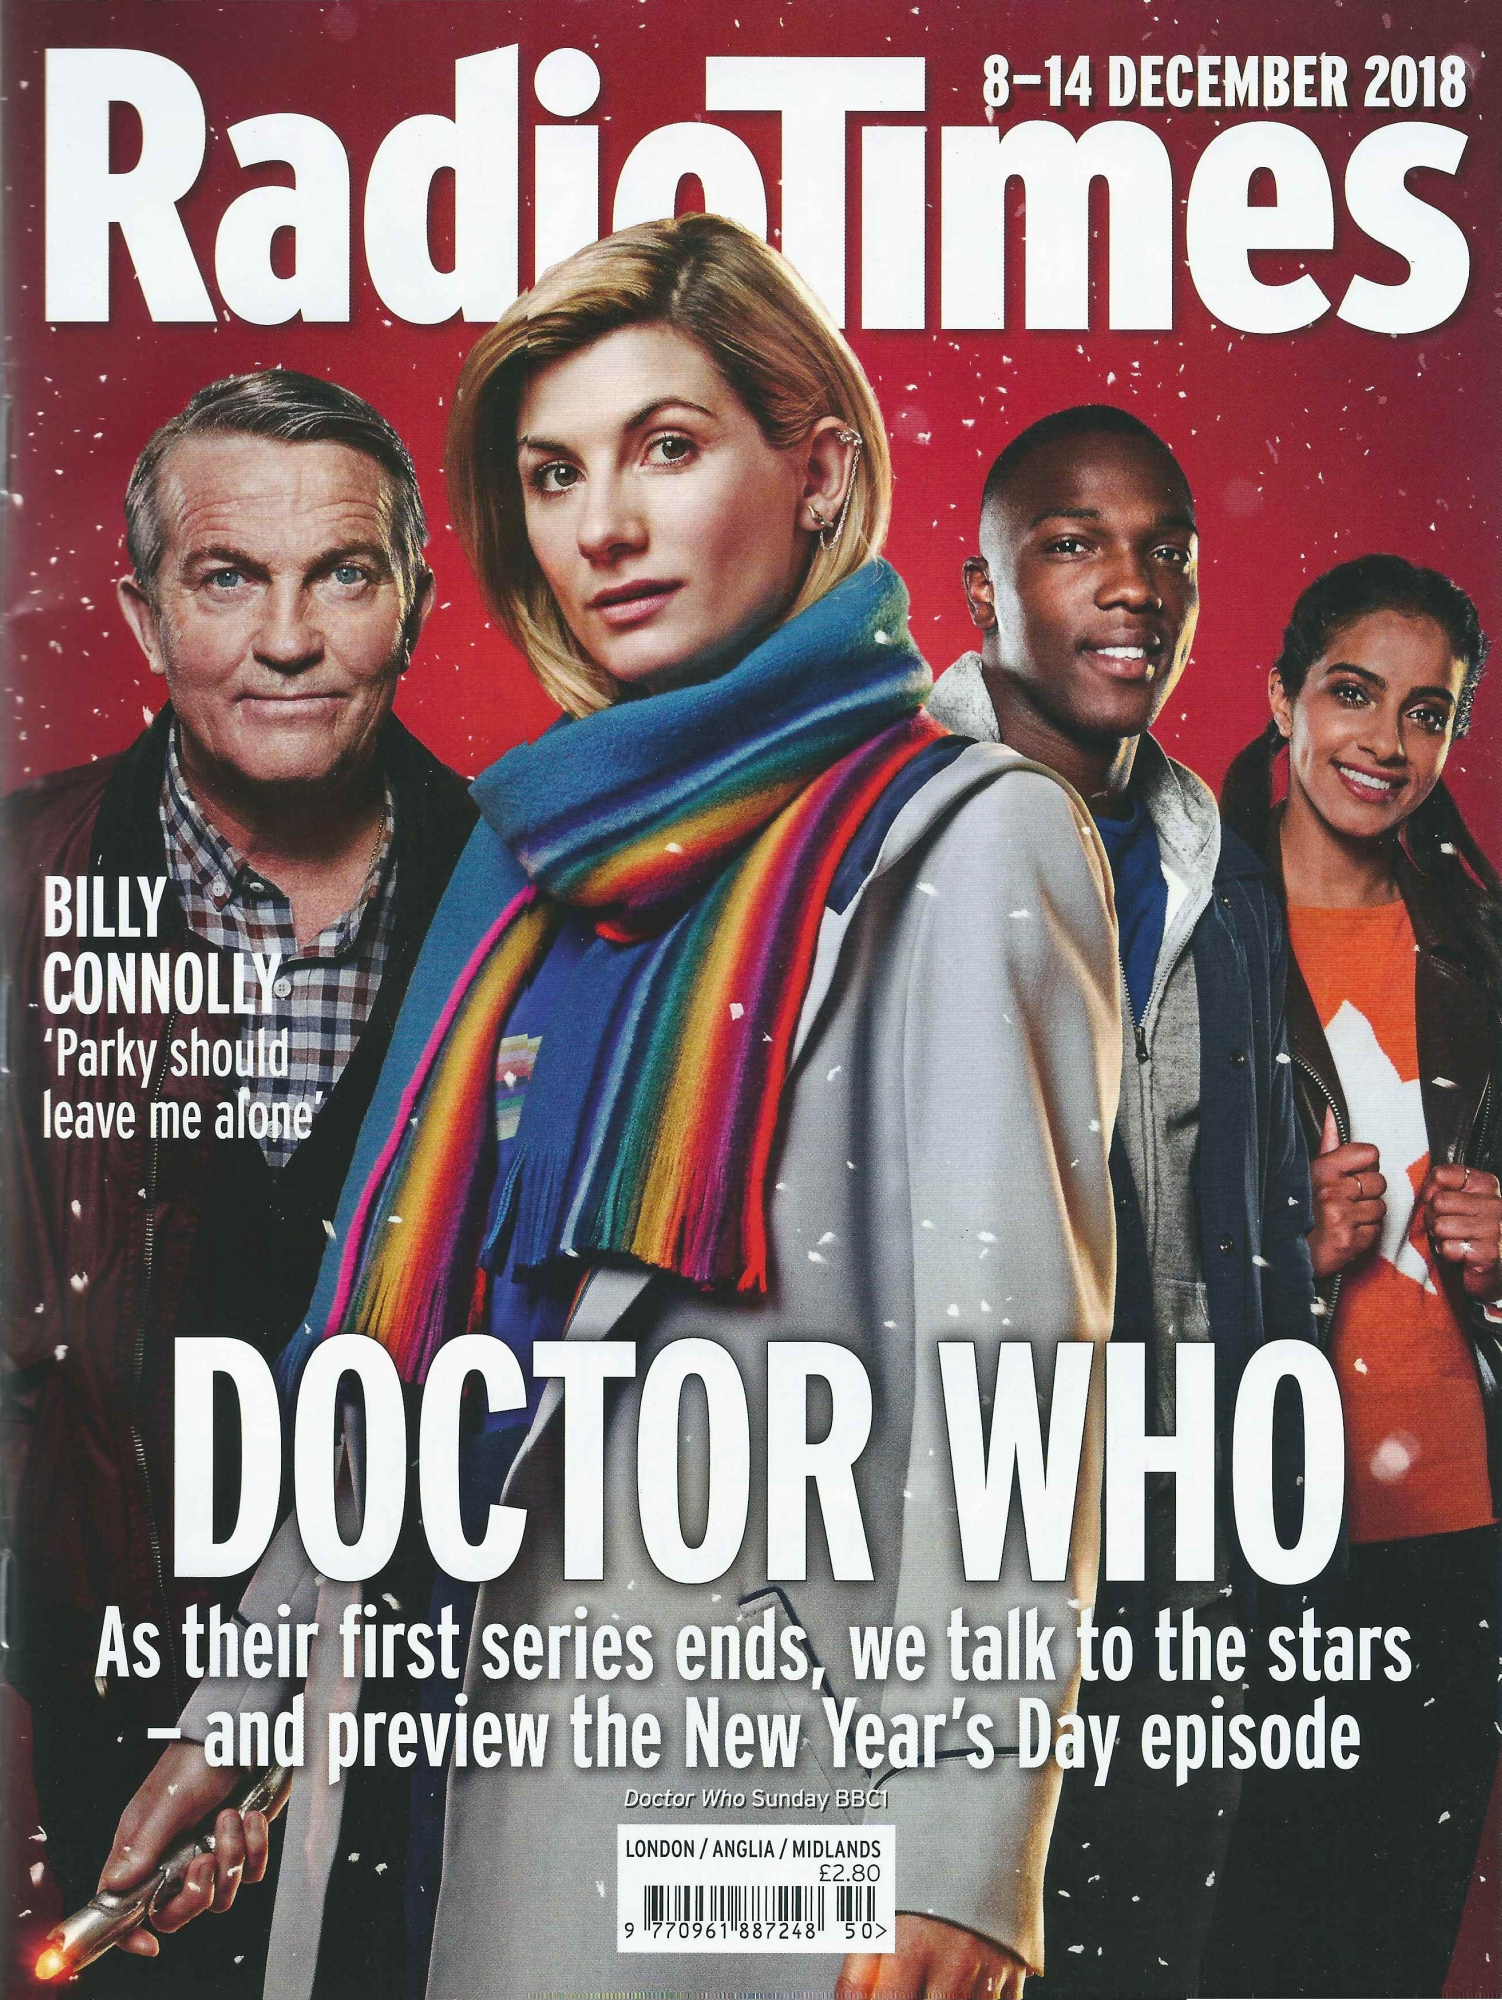 Radio Times, 8-14 Dec 2018 (Credit: Radio Times)